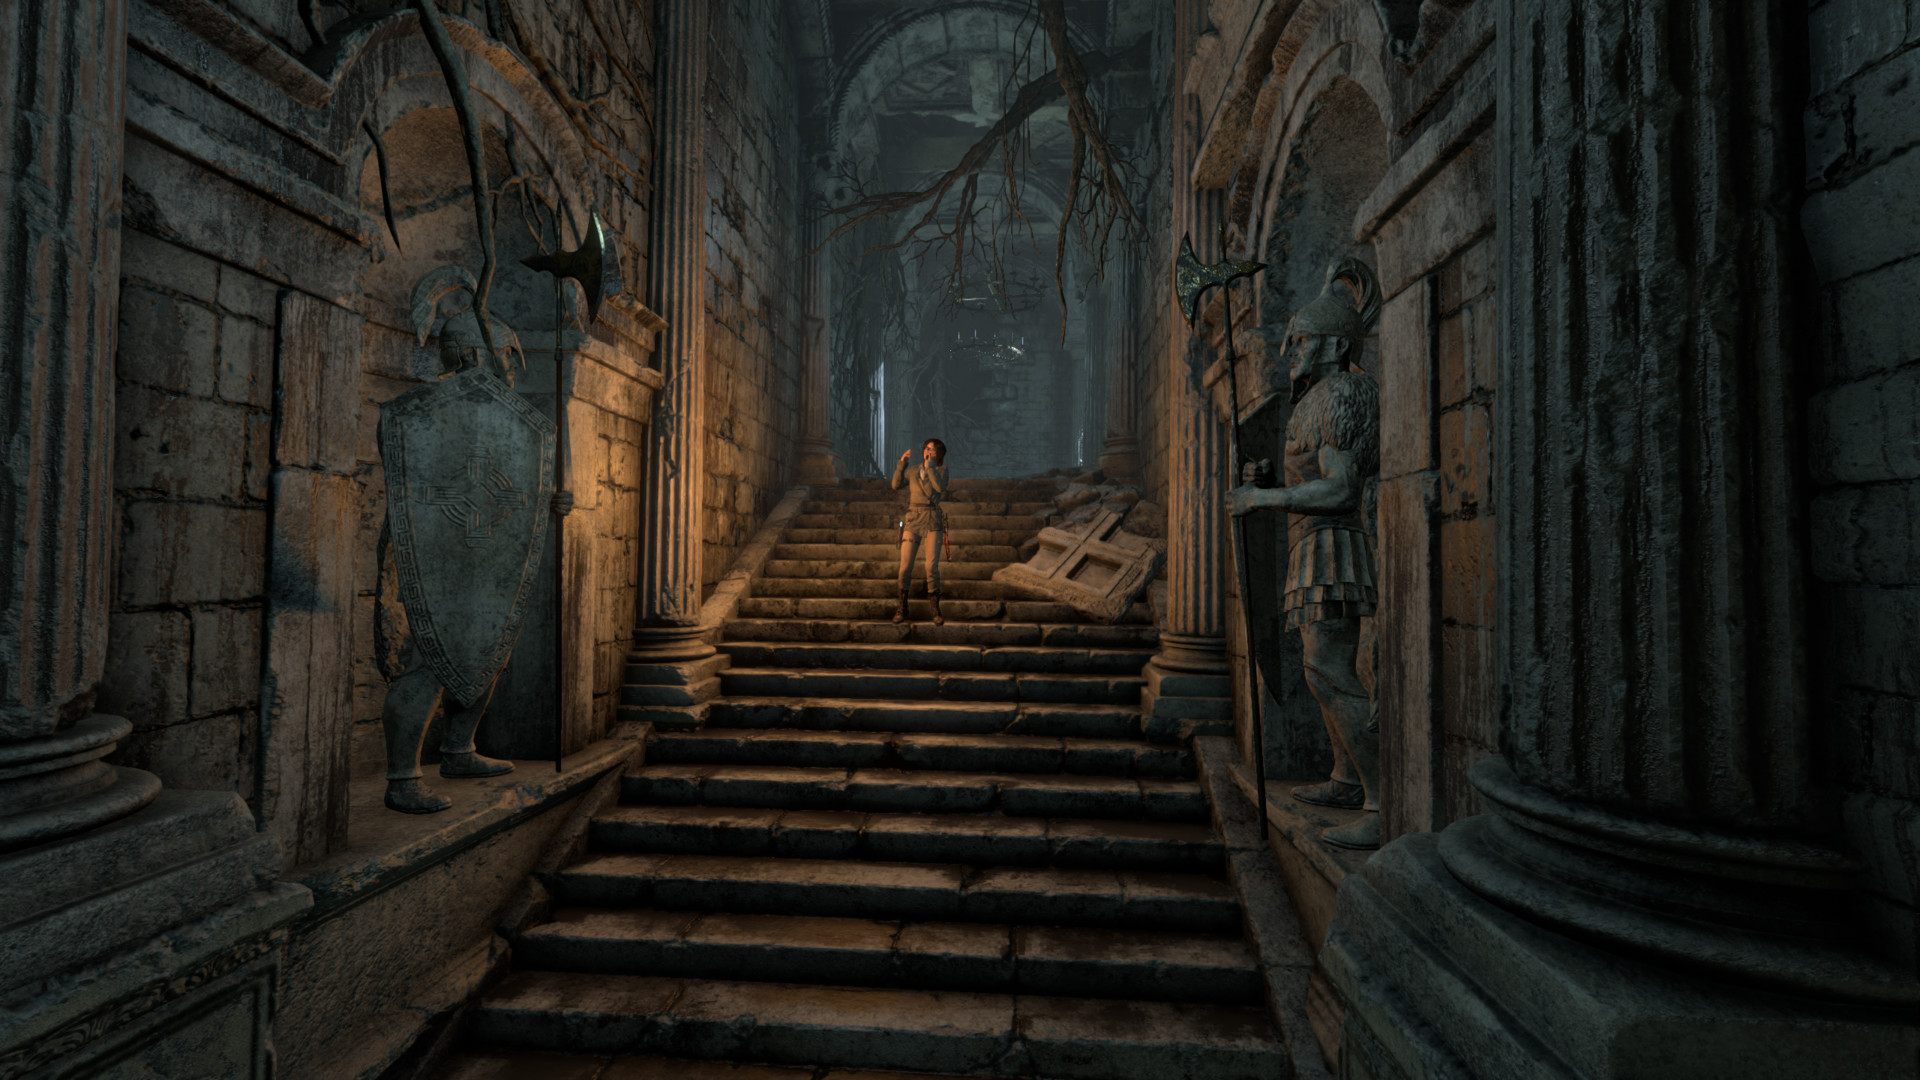 Akash dholakia rise of the tomb raider v1 0 build 668 1 64 7 17 2016 4 54 40 pm